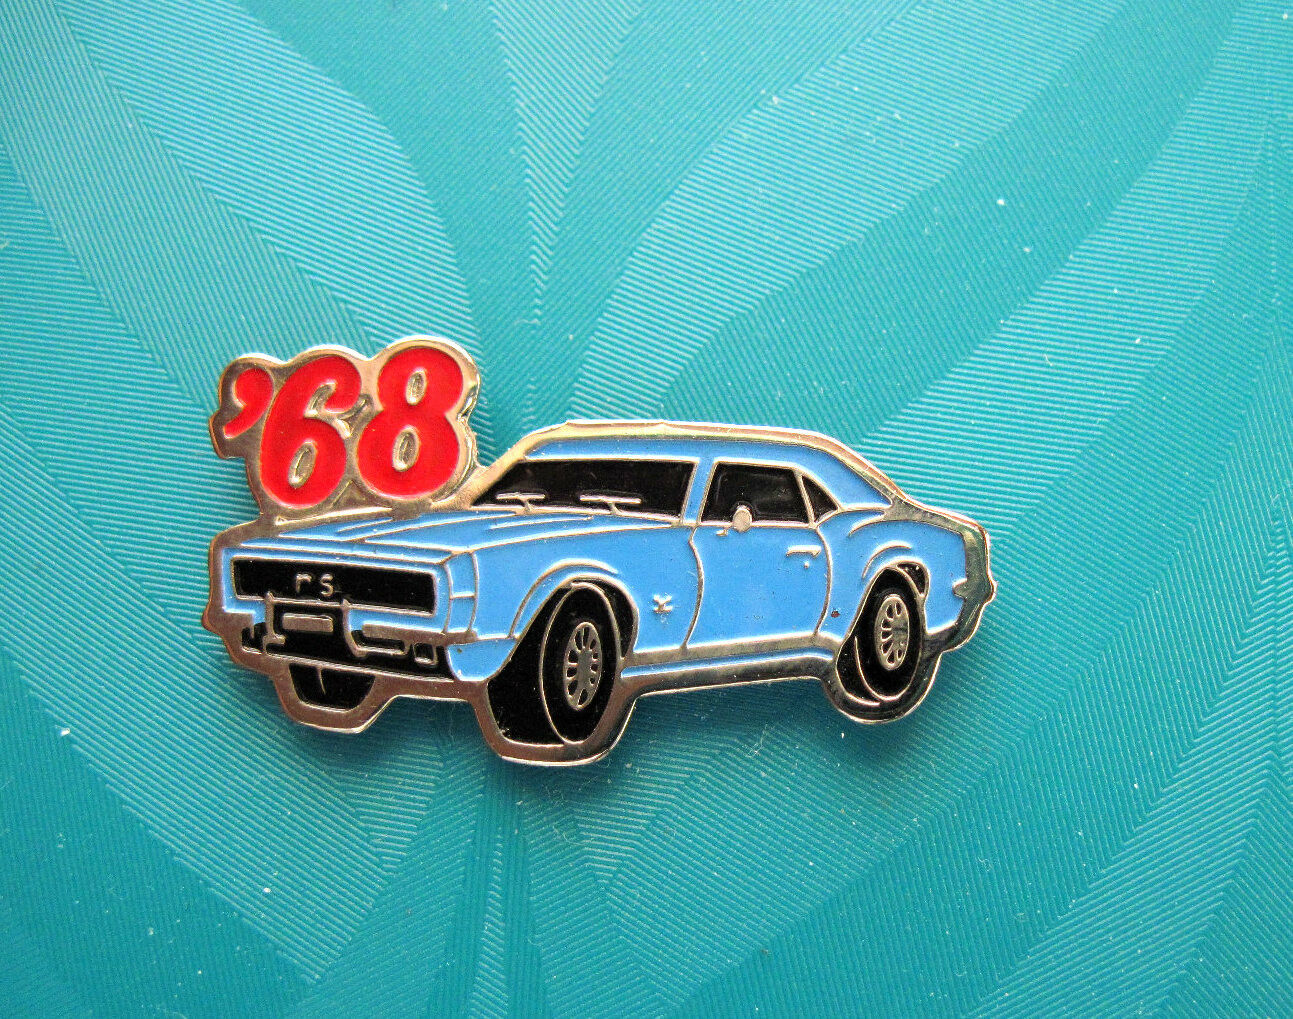 hight resolution of 68 1968 camaro rs coupe hat pin lapel pin tie tac hatpin gift boxed 1 of 2free shipping